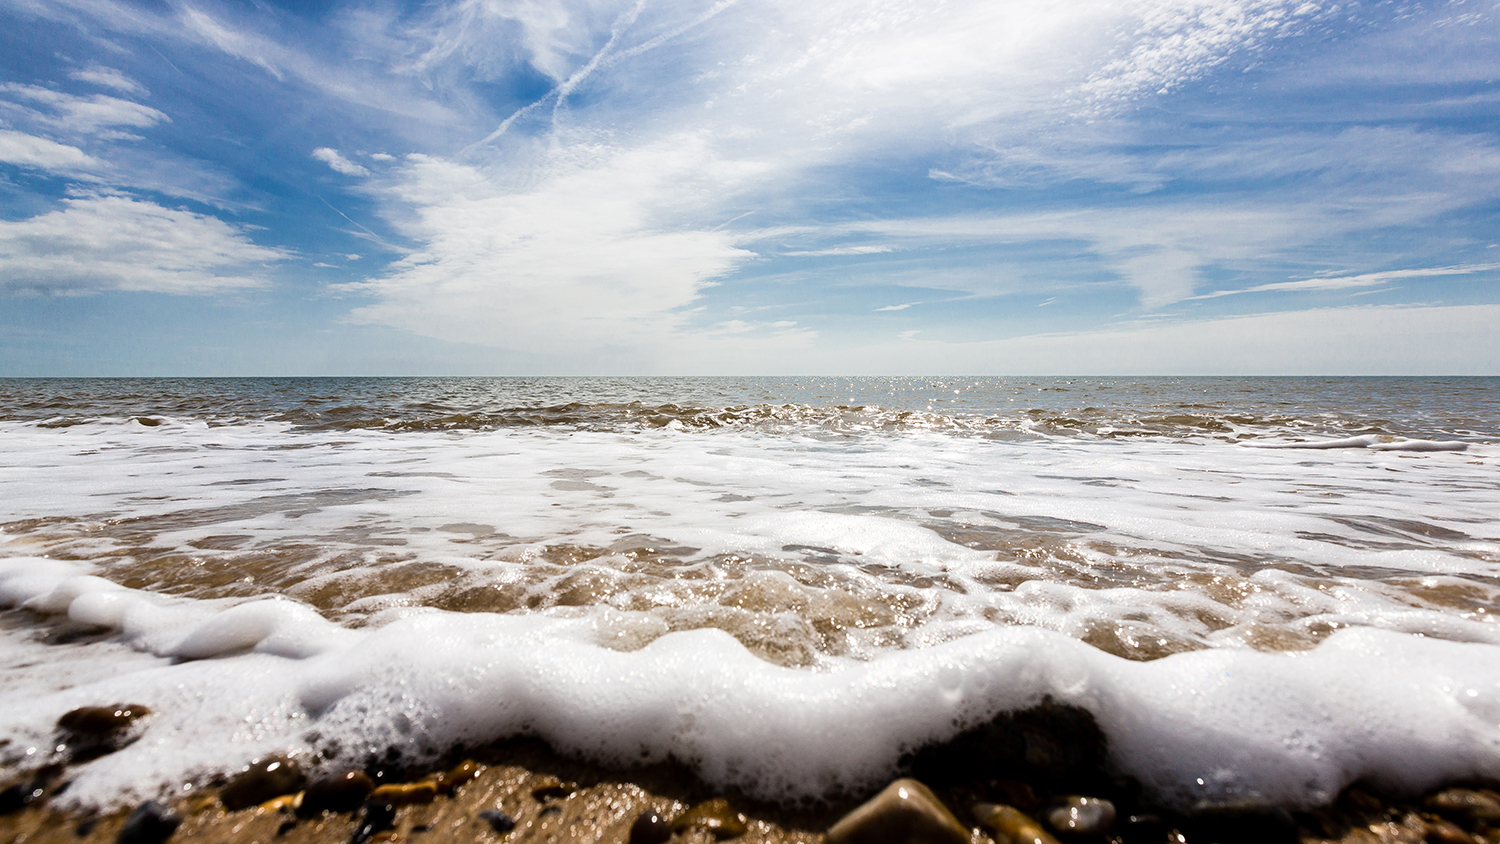 Seascape shot of waves breaking on the shore at Aldeburgh